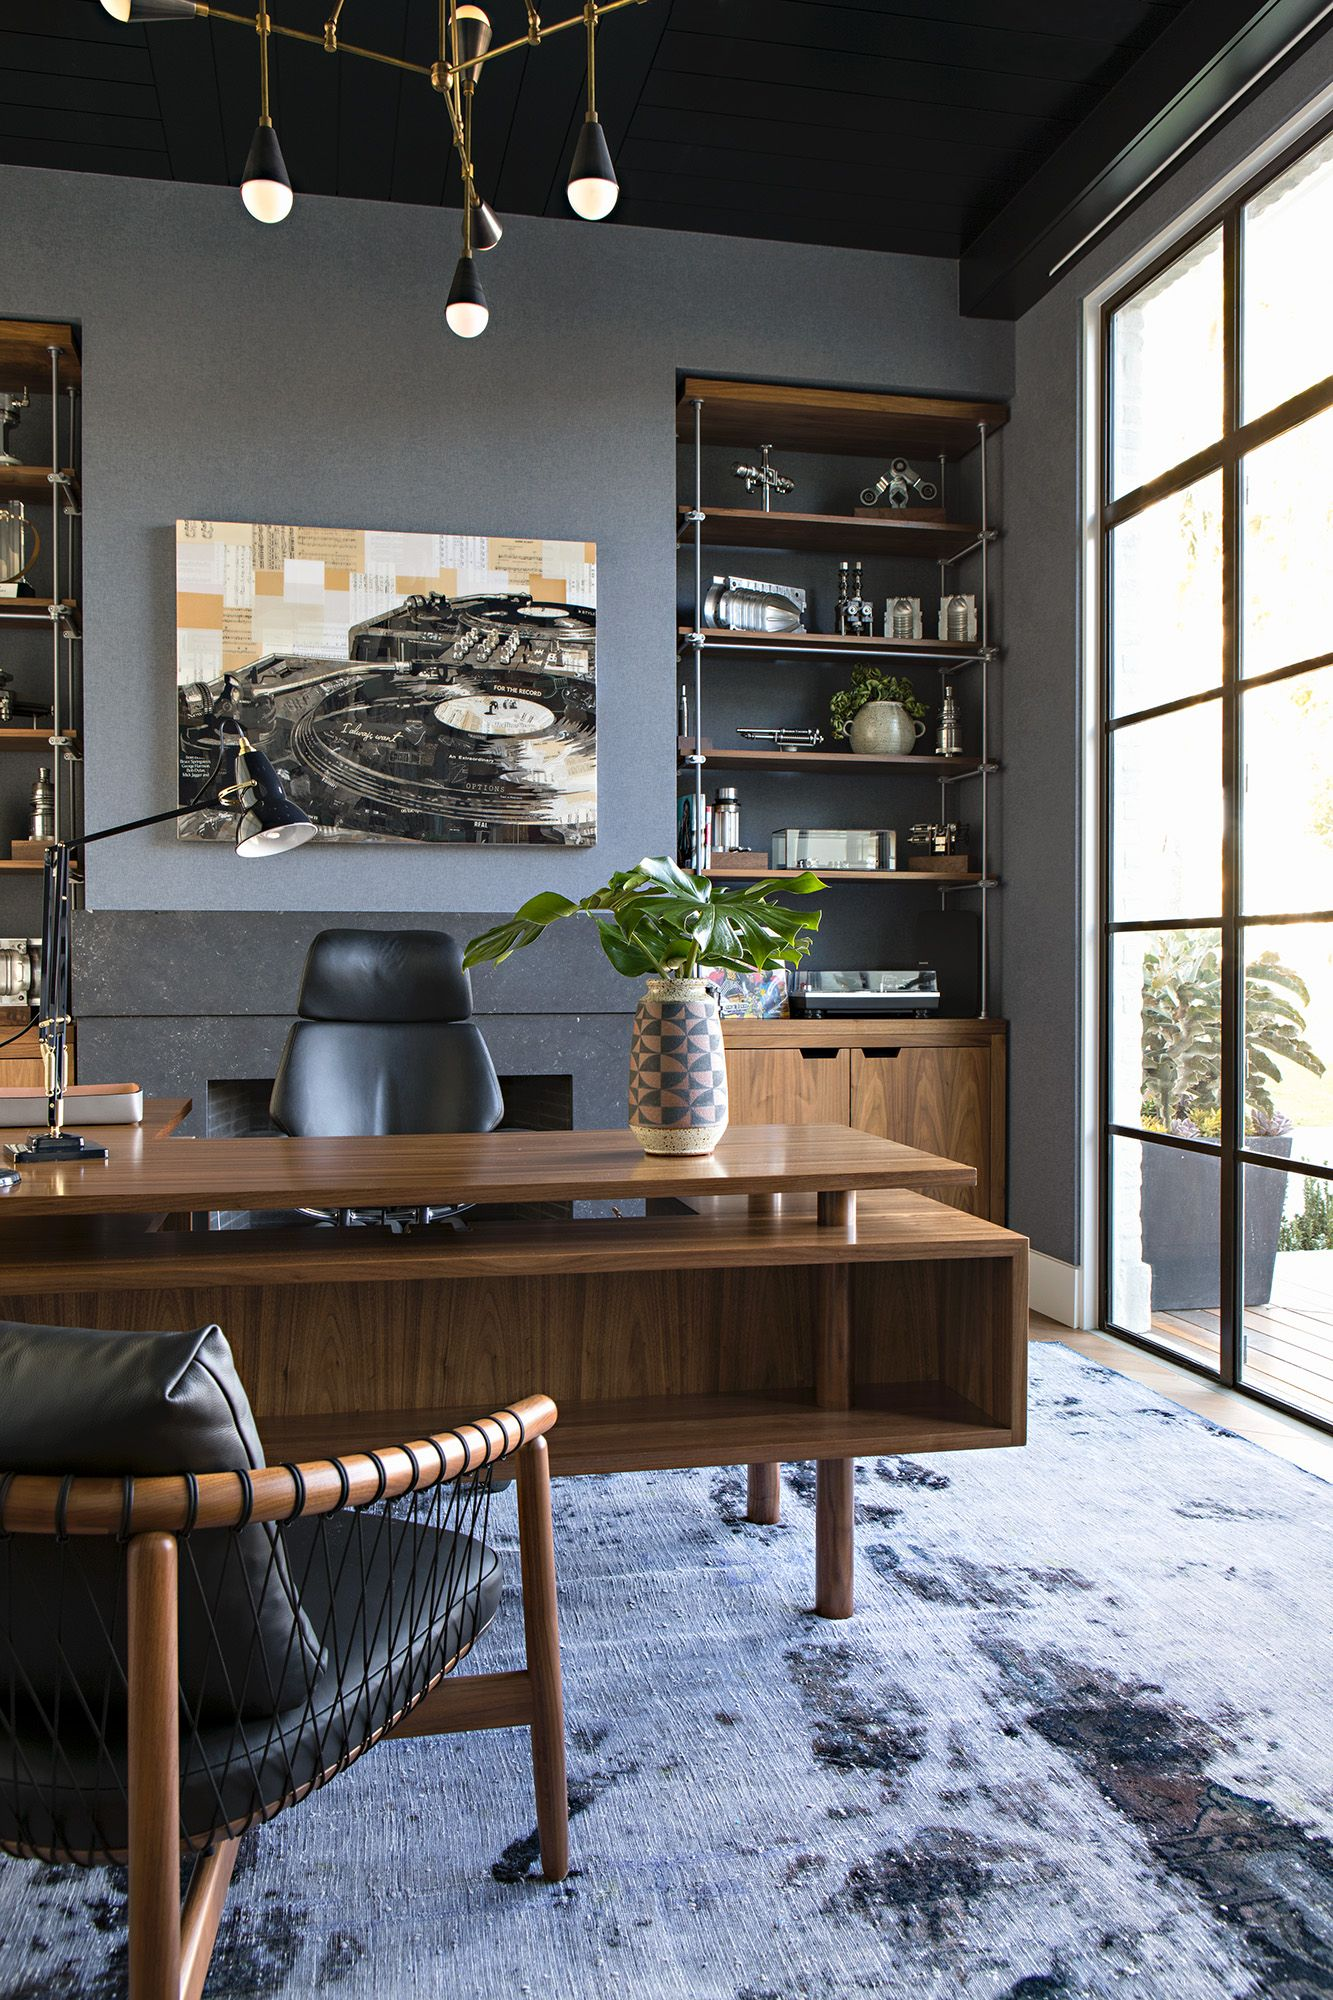 manly office decor image small stlye. The Owner\u0027s Home Office Has Custom Brass And Walnut Built-ins That House A Collection Of Machine Parts. Walls Are Upholstered In Grayish Blue Flannel, Manly Decor Image Small Stlye L